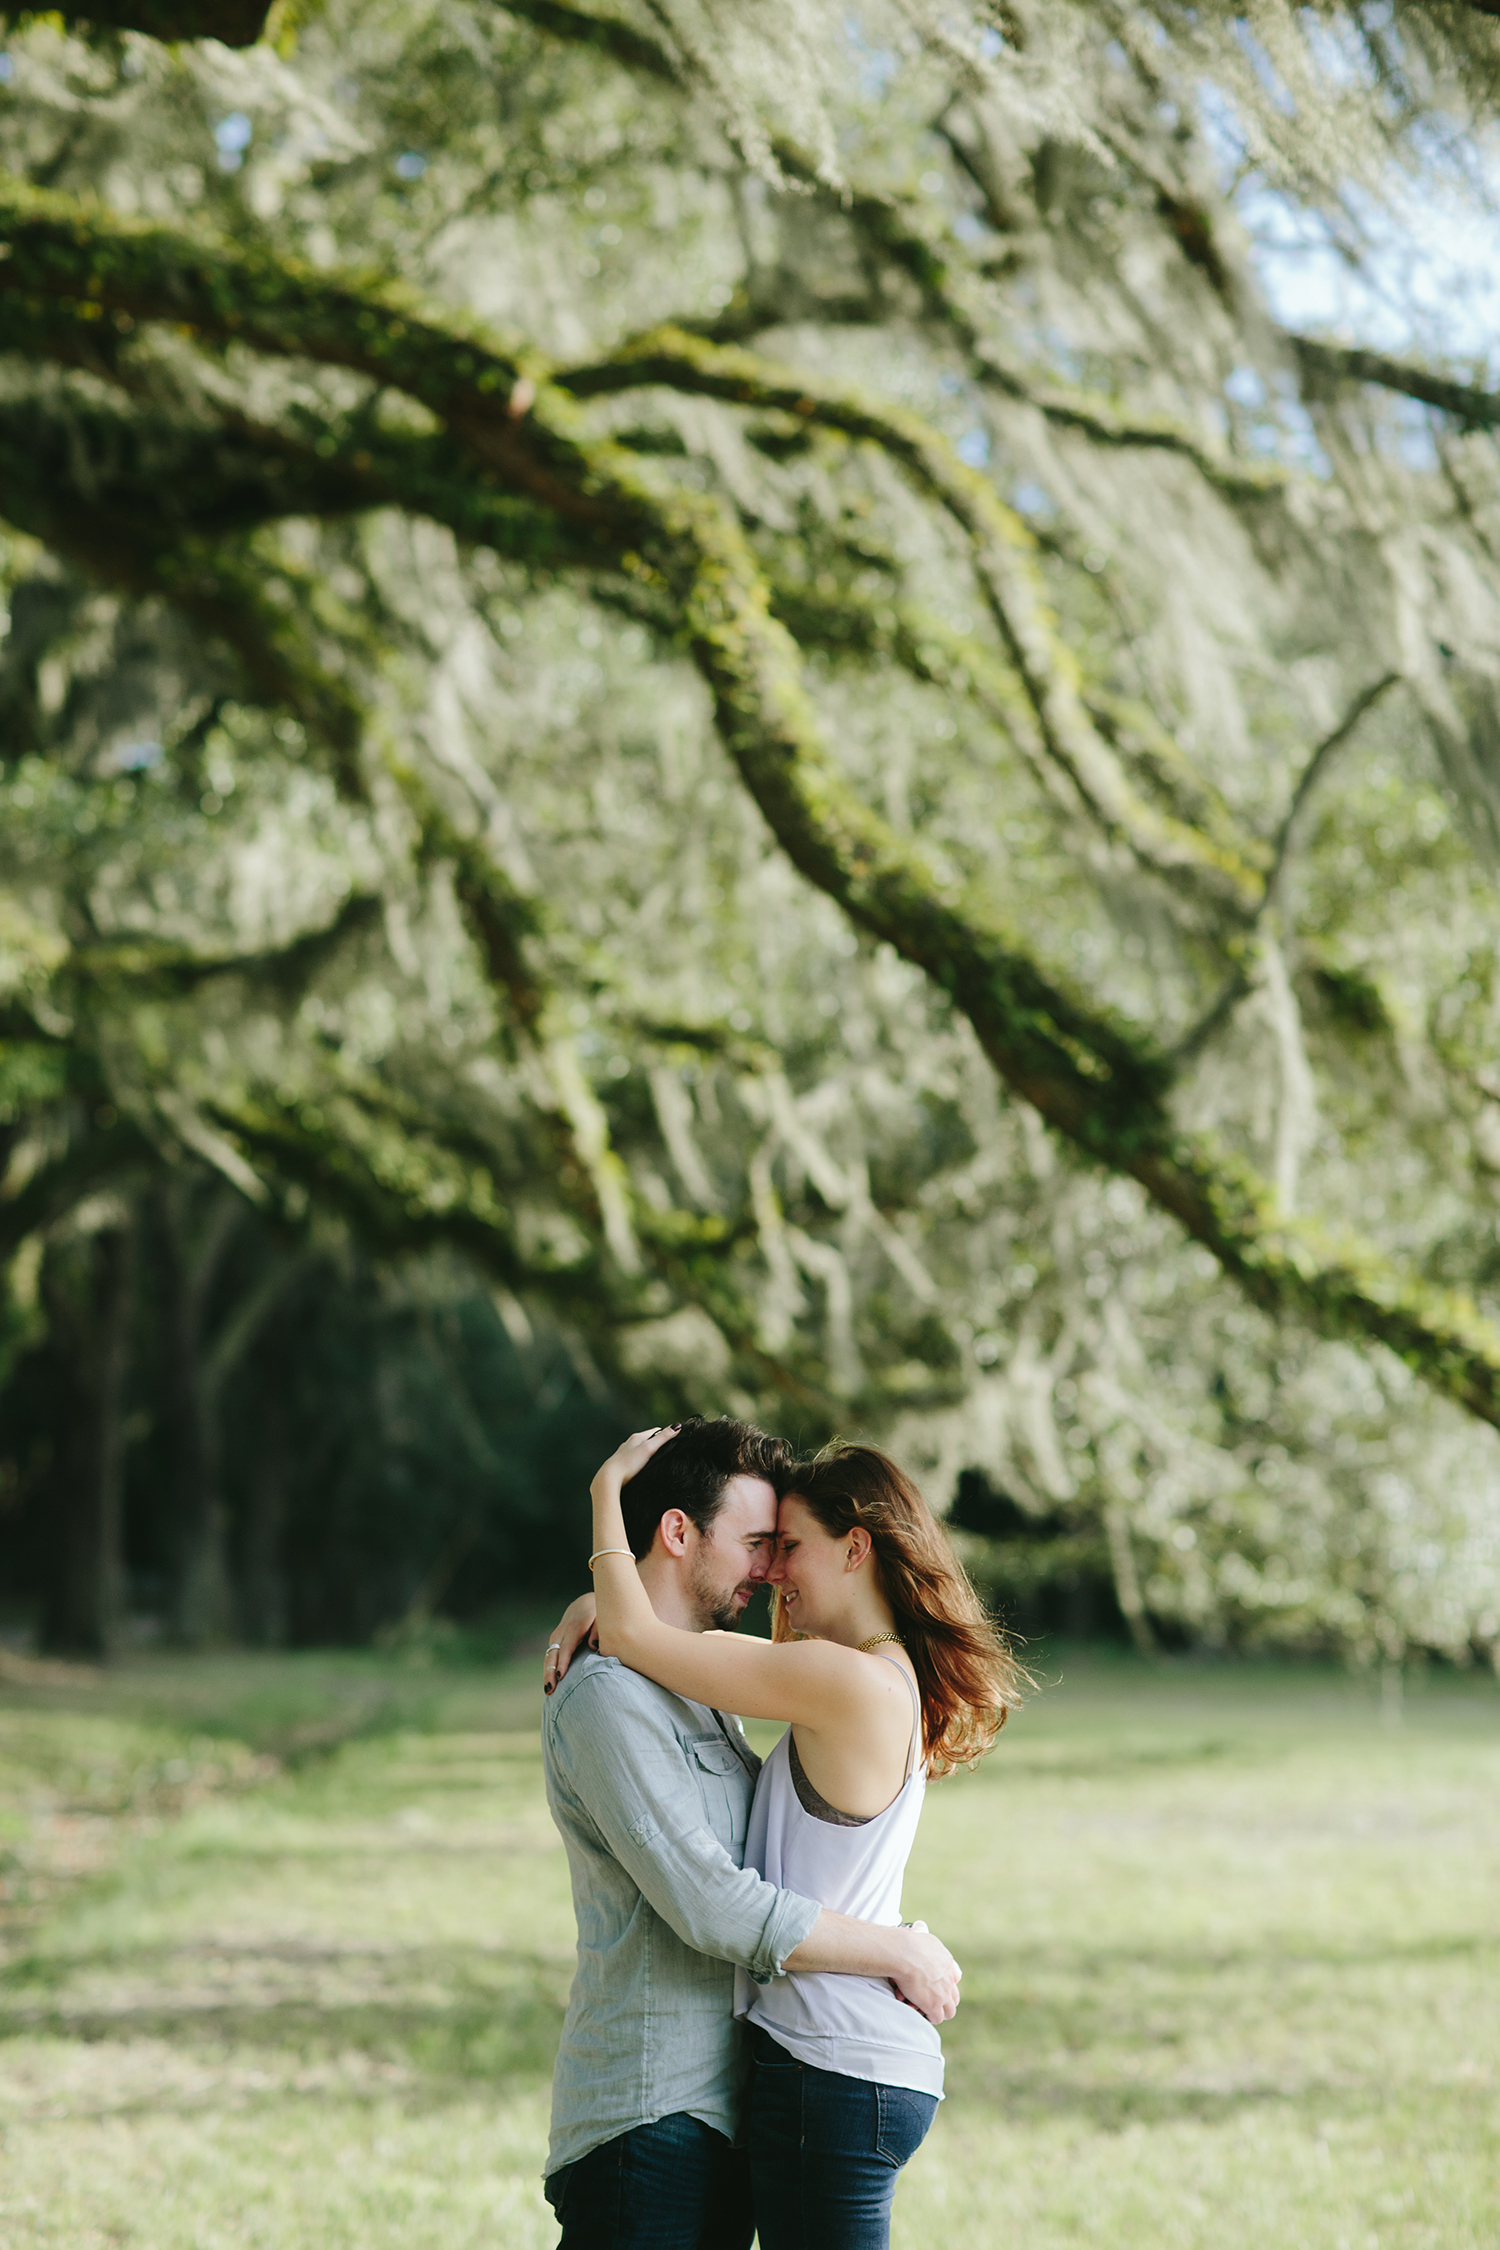 karliwillengaged - alicia white photography-126.jpg